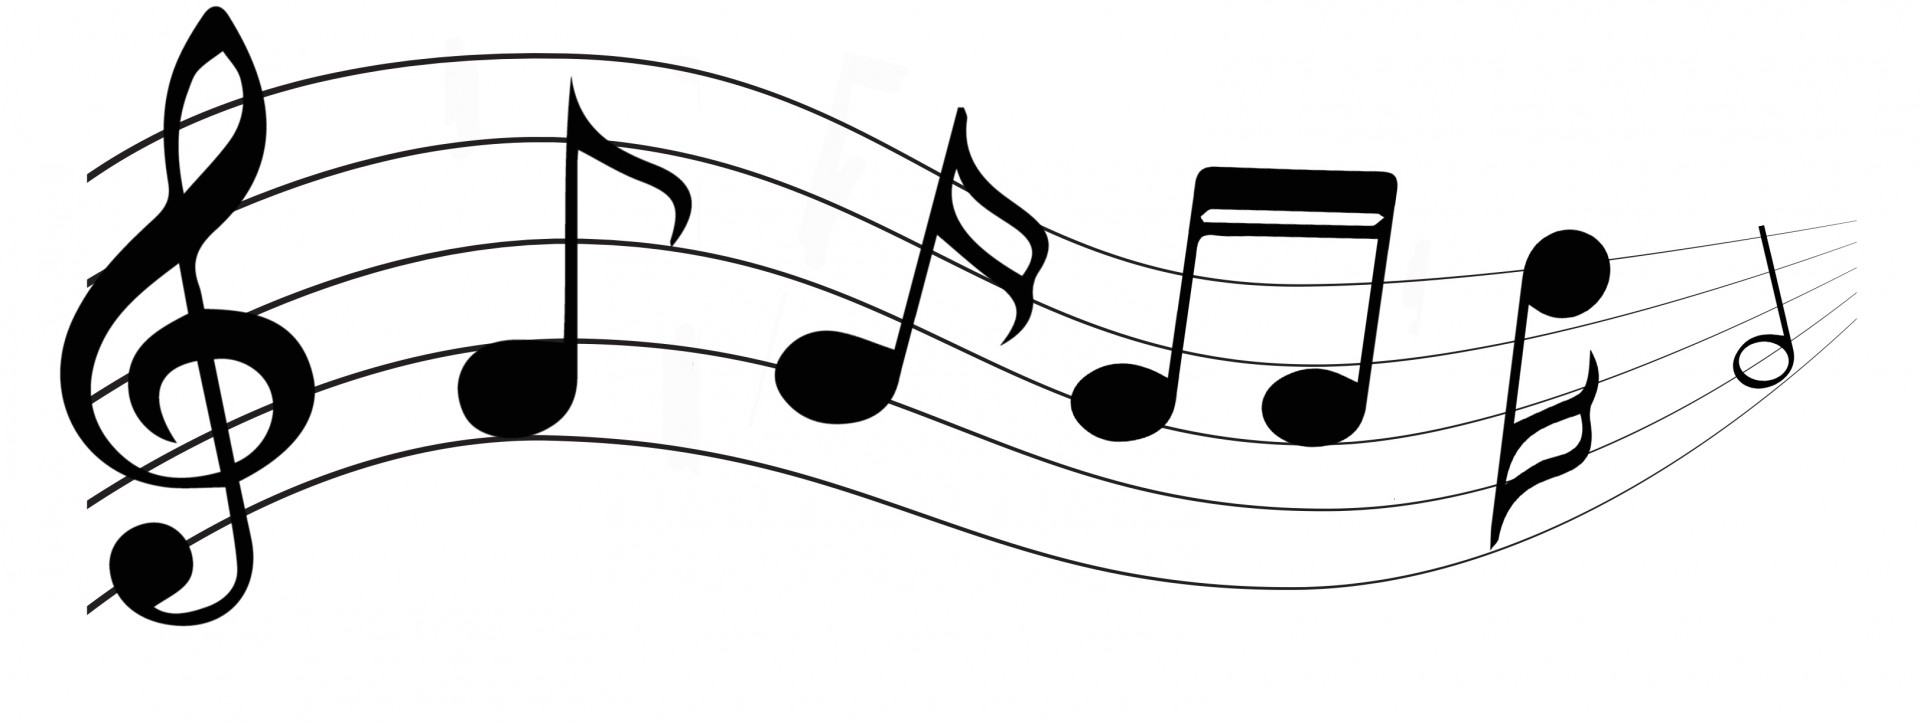 1920x724 Musical Notes Free Stock Photo